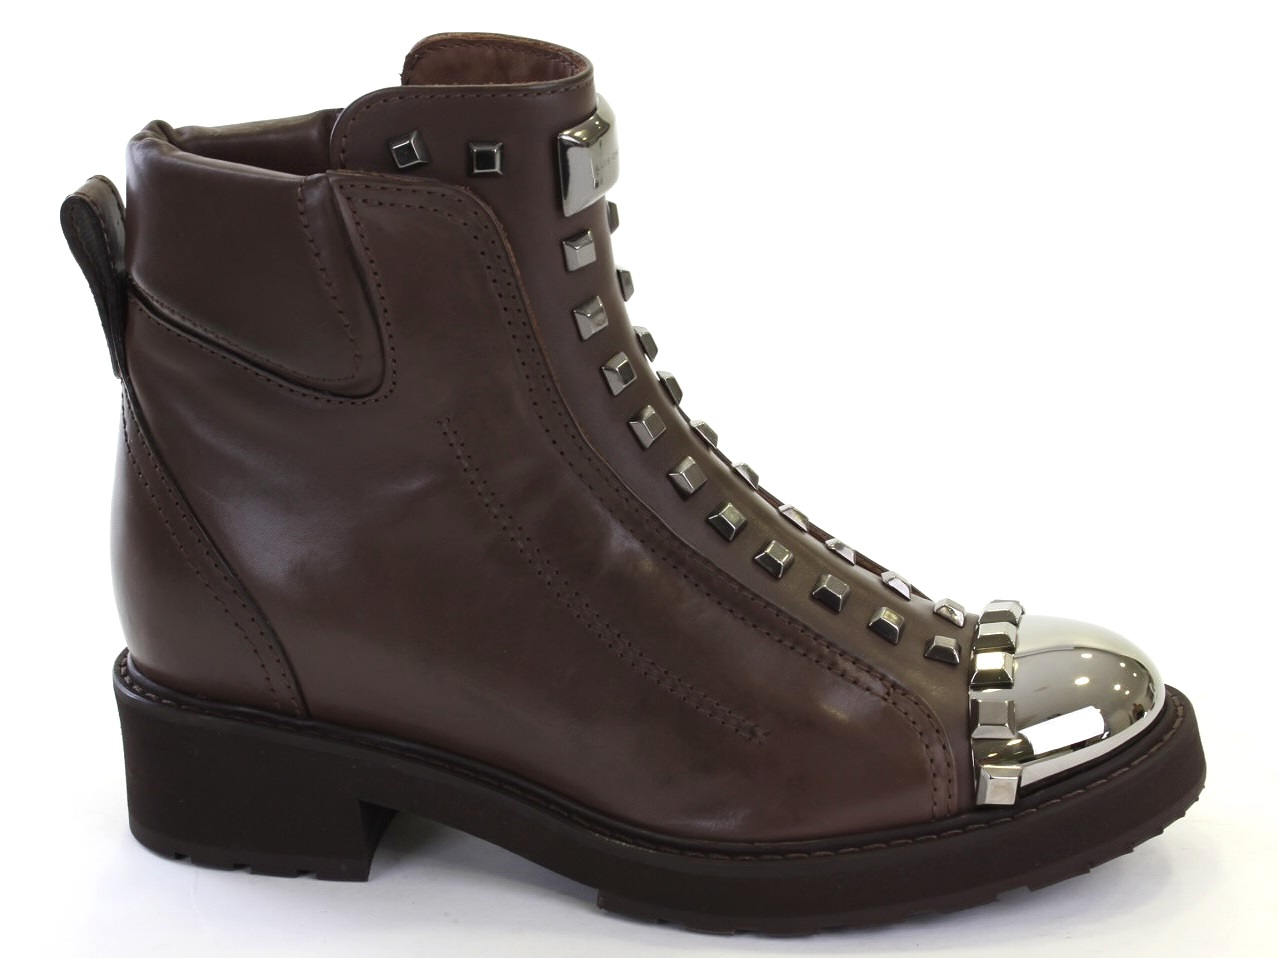 Wedge Boots Luis Onofre - 293 3858